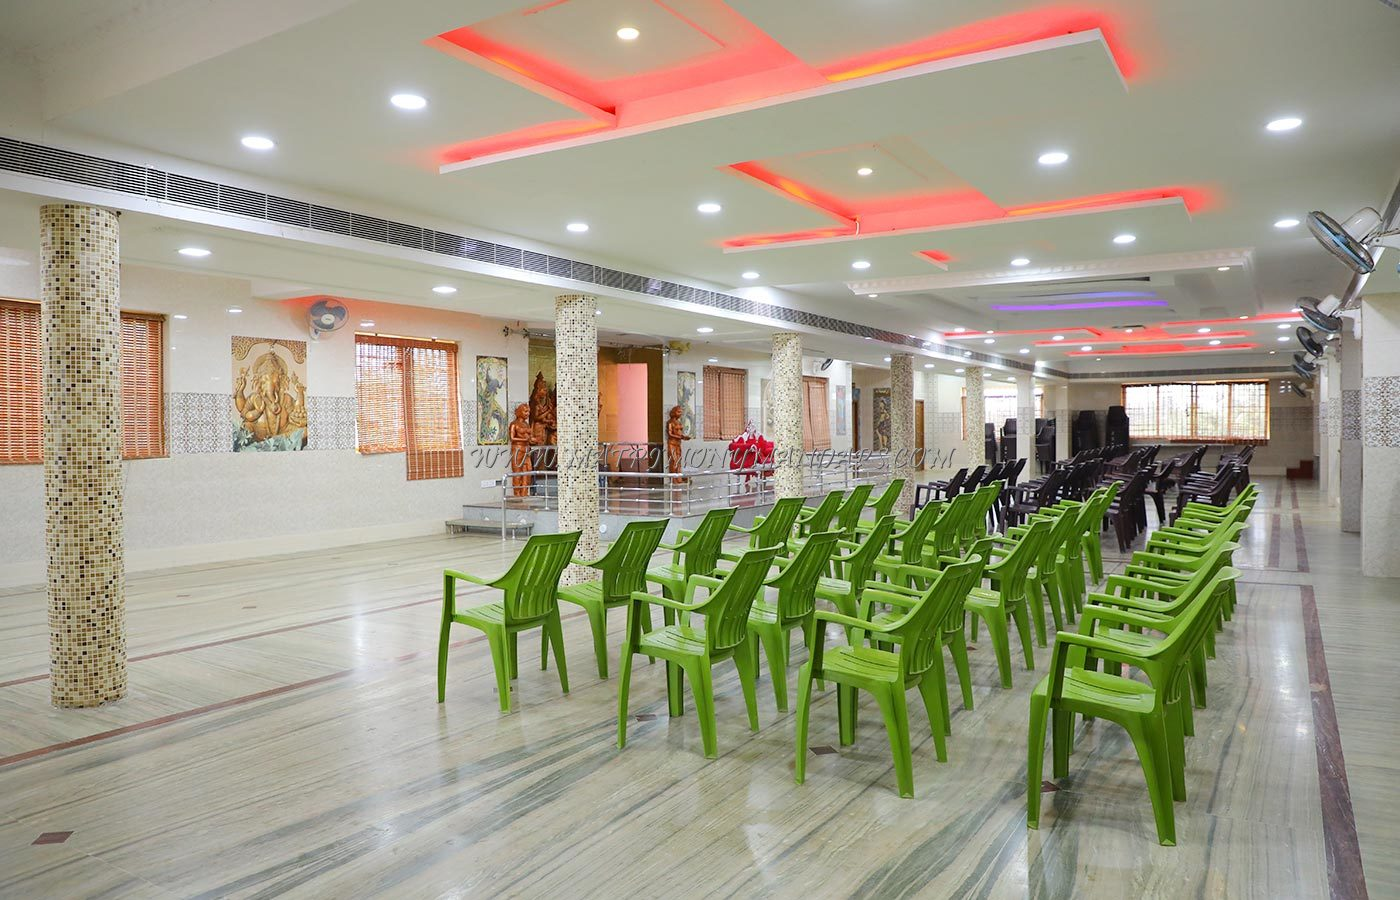 Find the availability of the Boobalan Thangamani Thirumana Mandapam (A/C) in Ariyankuppam, Pondicherry and avail special offers